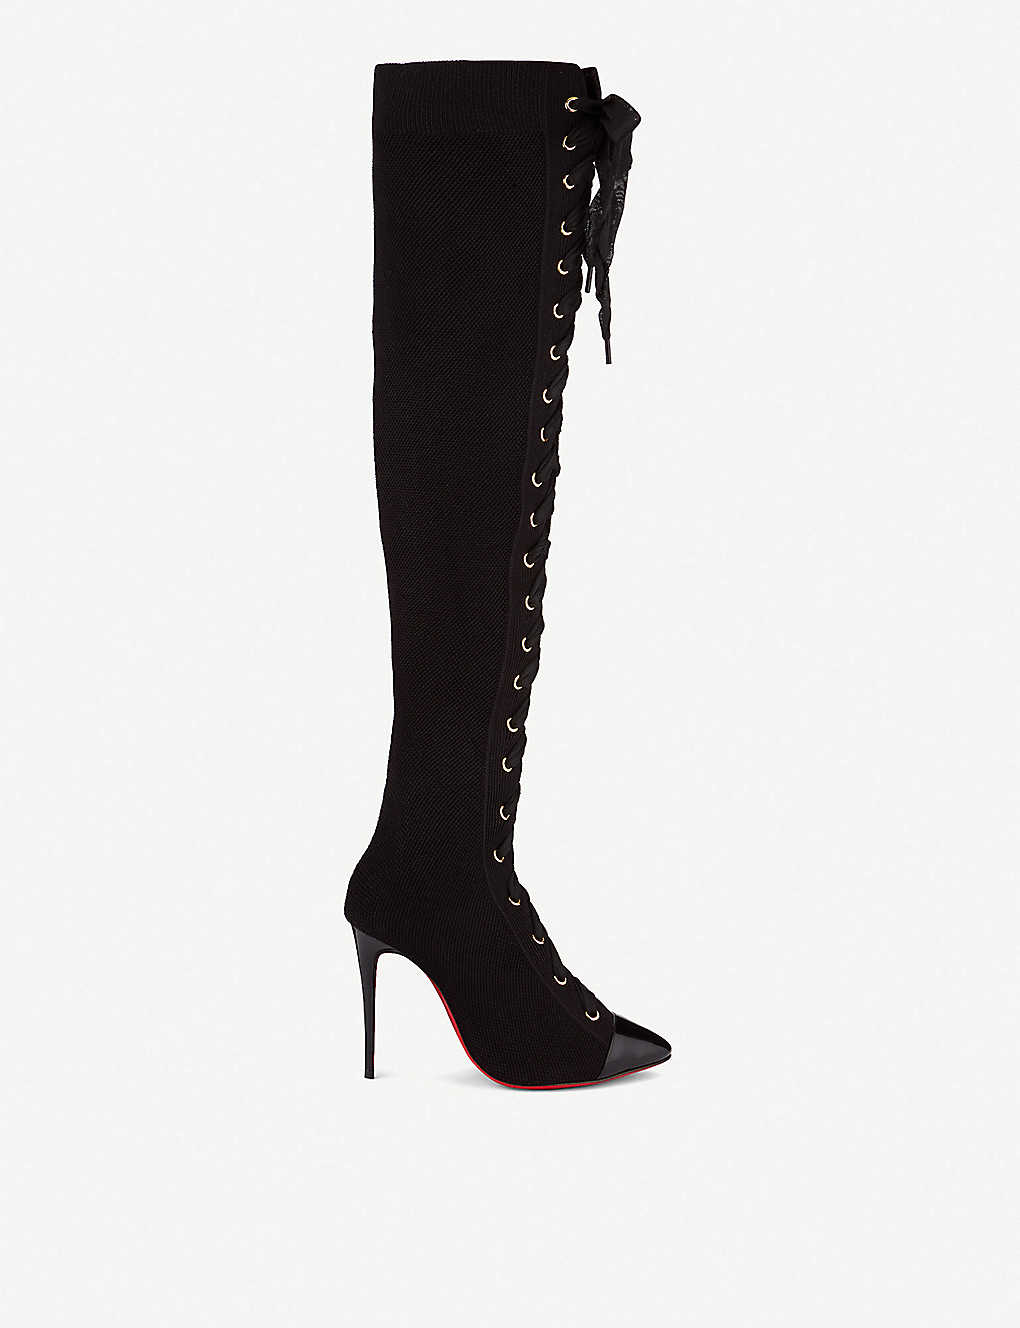 best loved d529b 3e332 CHRISTIAN LOUBOUTIN - Frenchie boot 100 pat/maille t ...